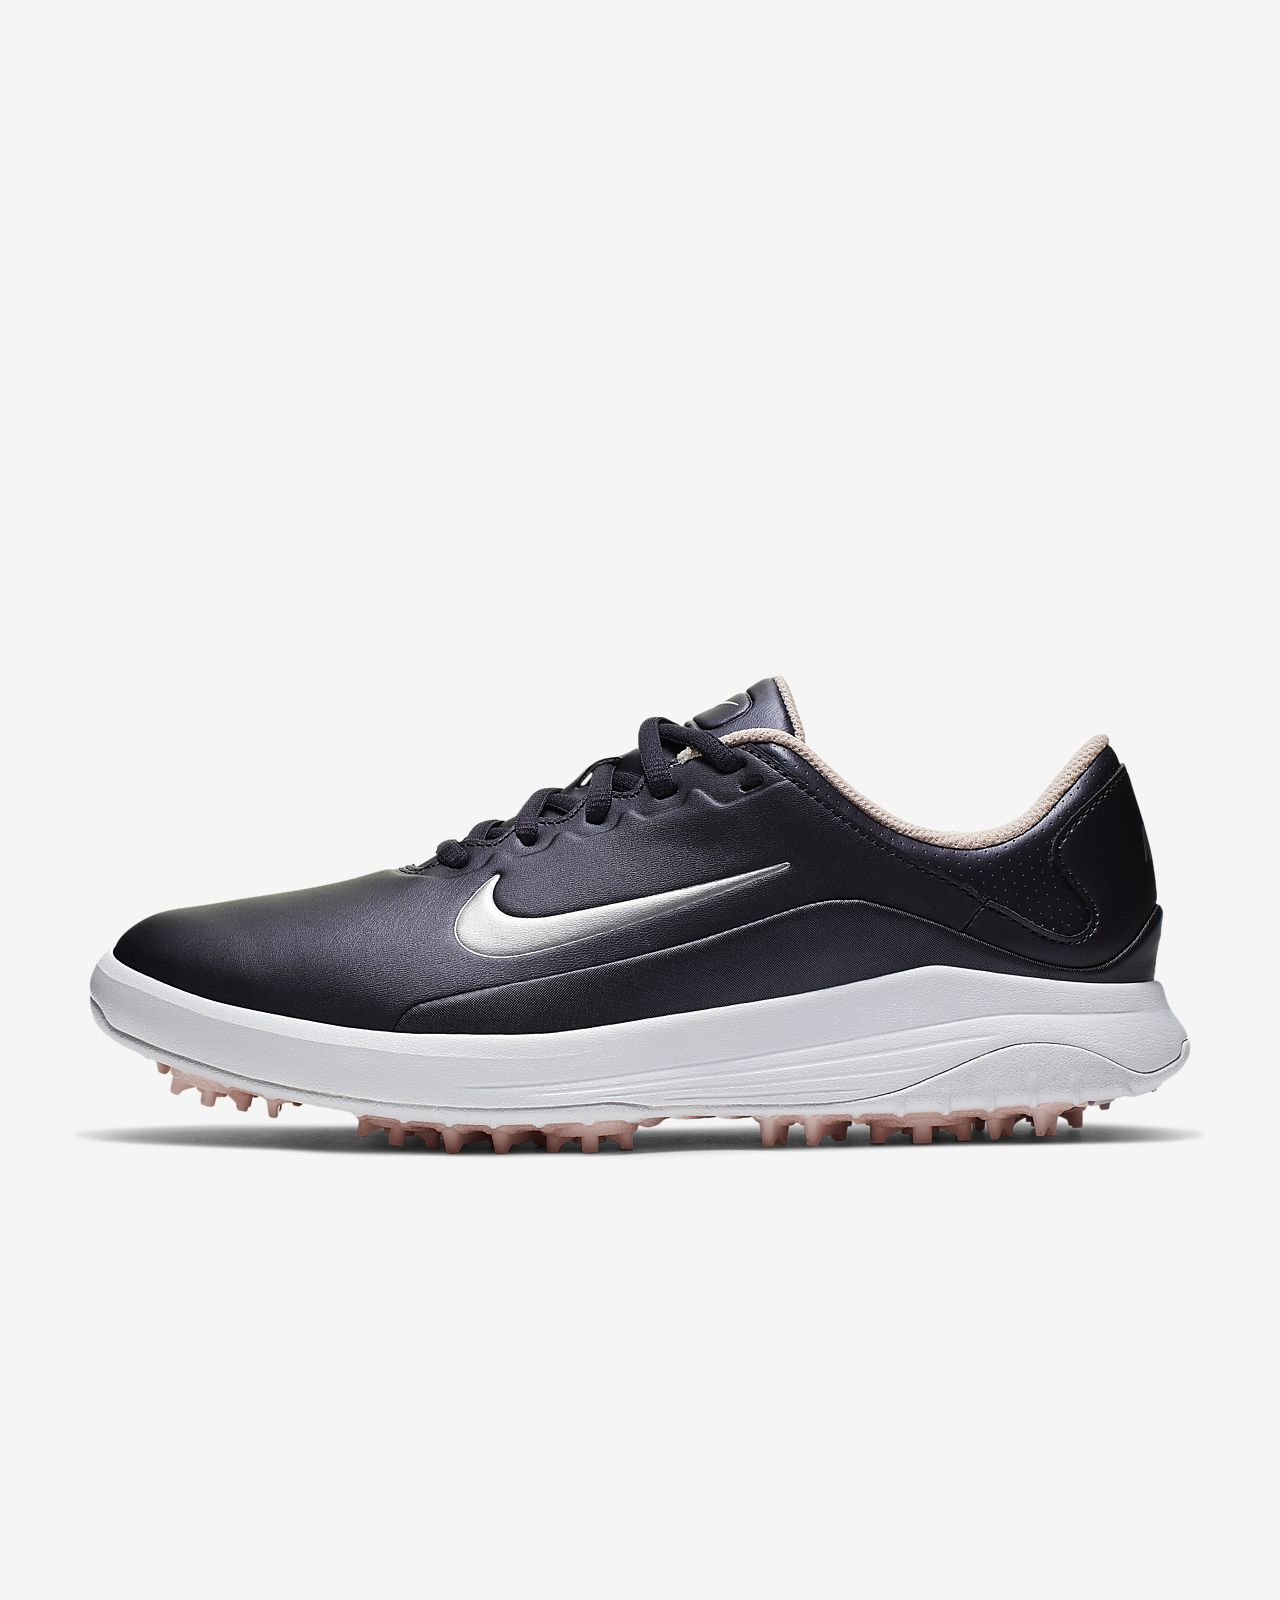 Nike Vapor Women's Golf Shoe